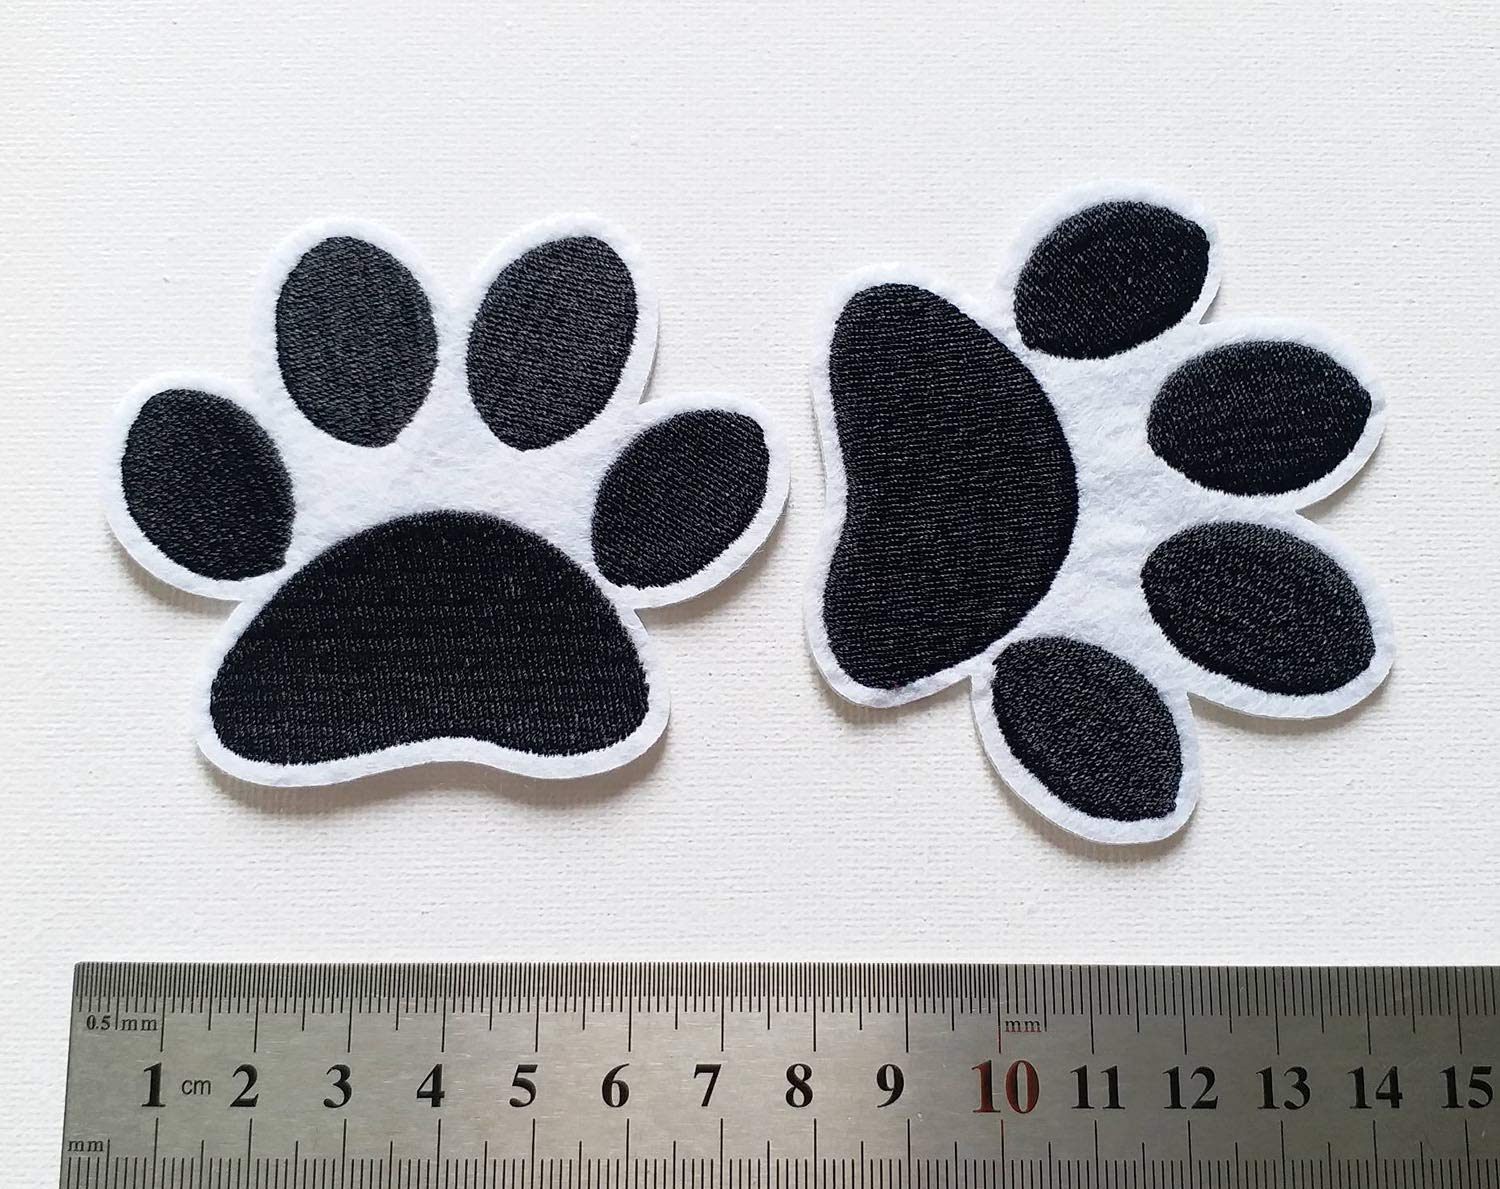 8x7cm Set of 10 pcs Dog PAW Iron On Sew On Cloth Embroidered Patches Appliques Machine Embroidery Needlecraft Sewing Projects DIY